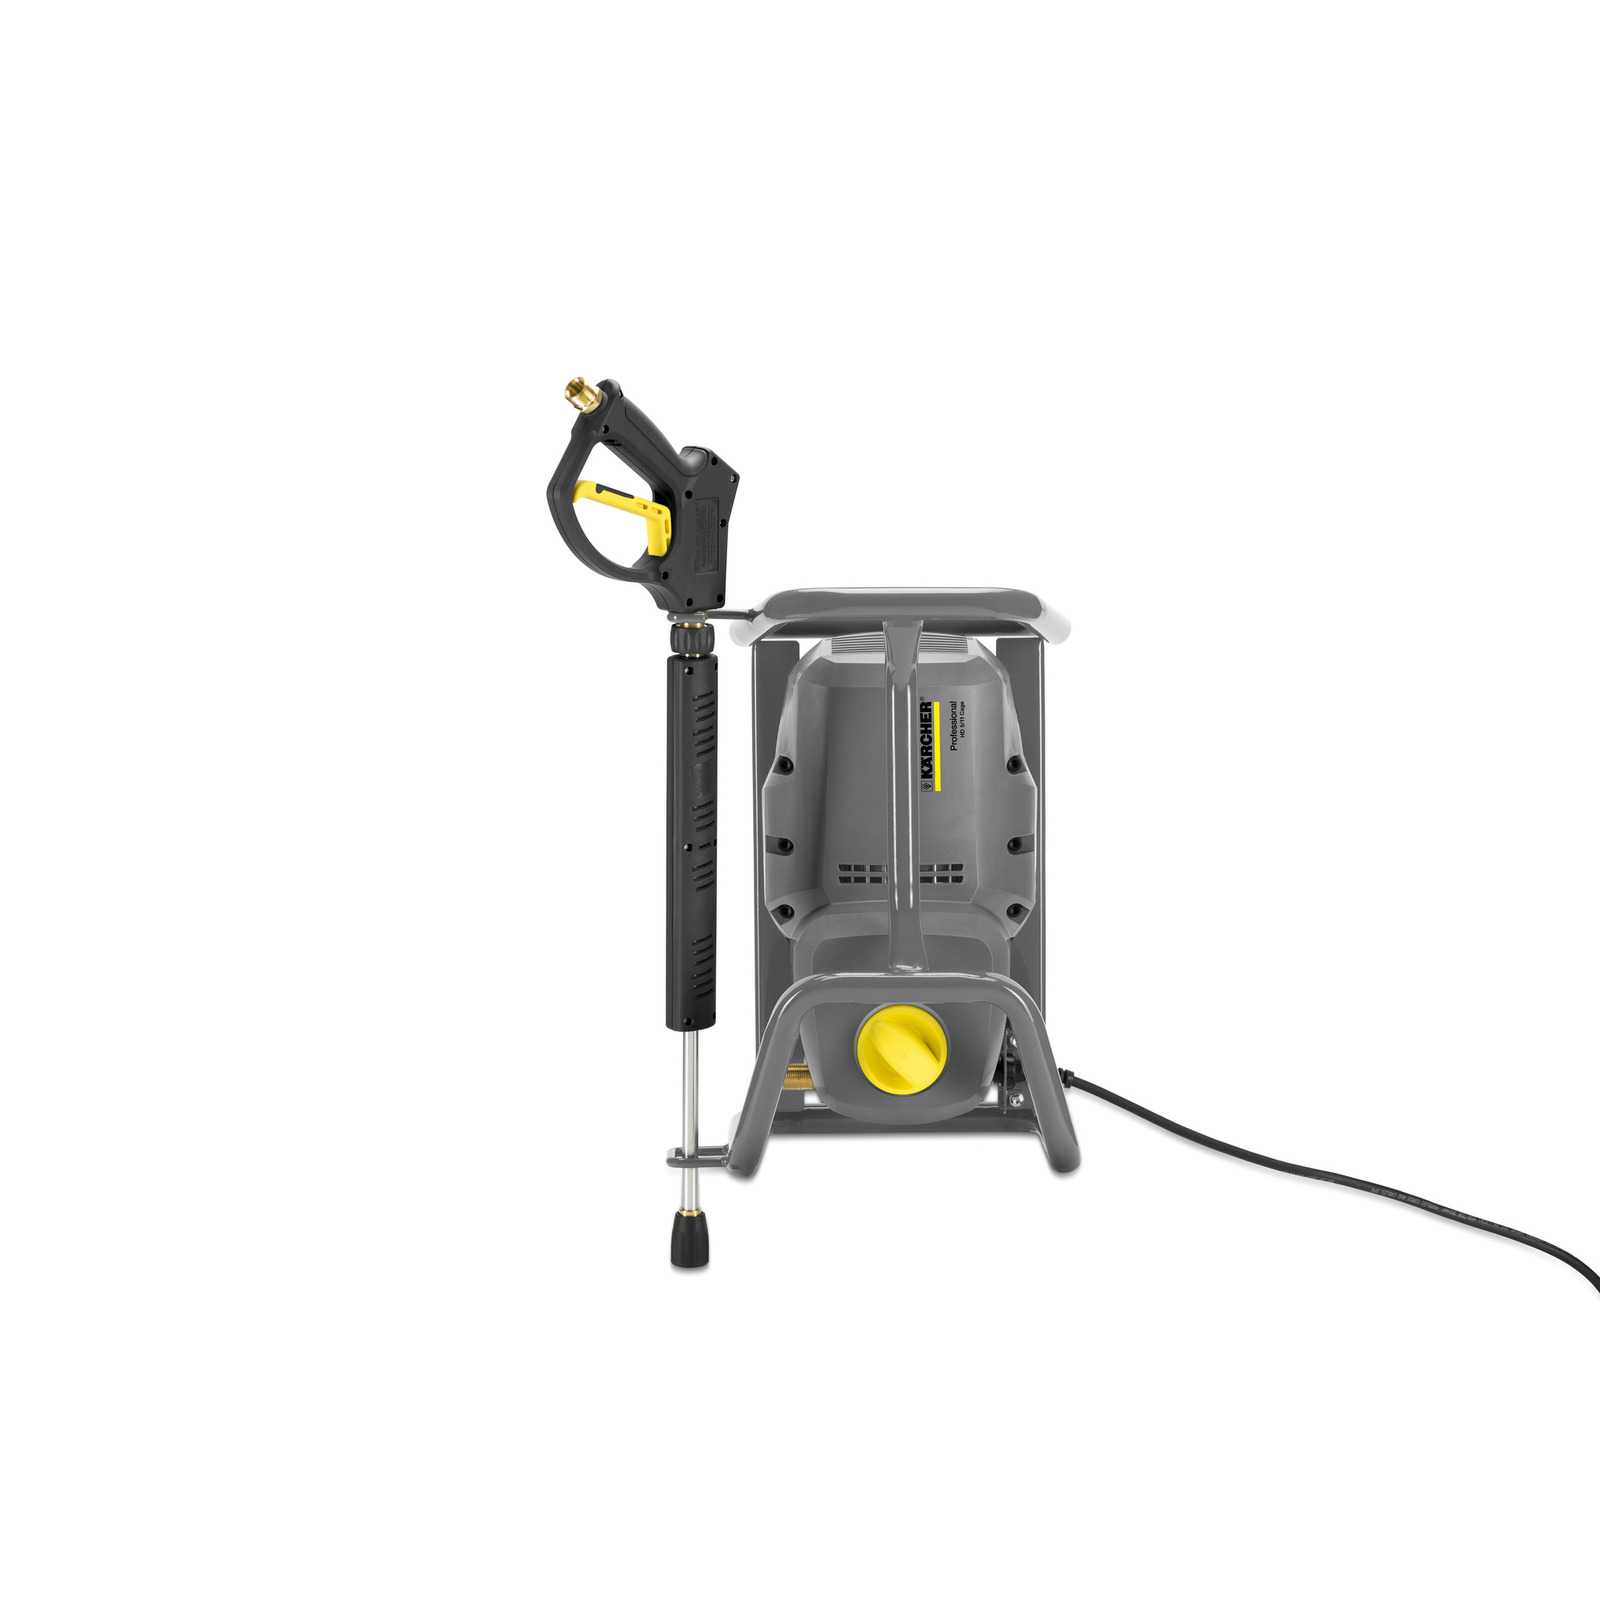 Karcher High Pressure Cold Water Cleaner - Single Phase/50 Hz HD 5/11 Cage Classic